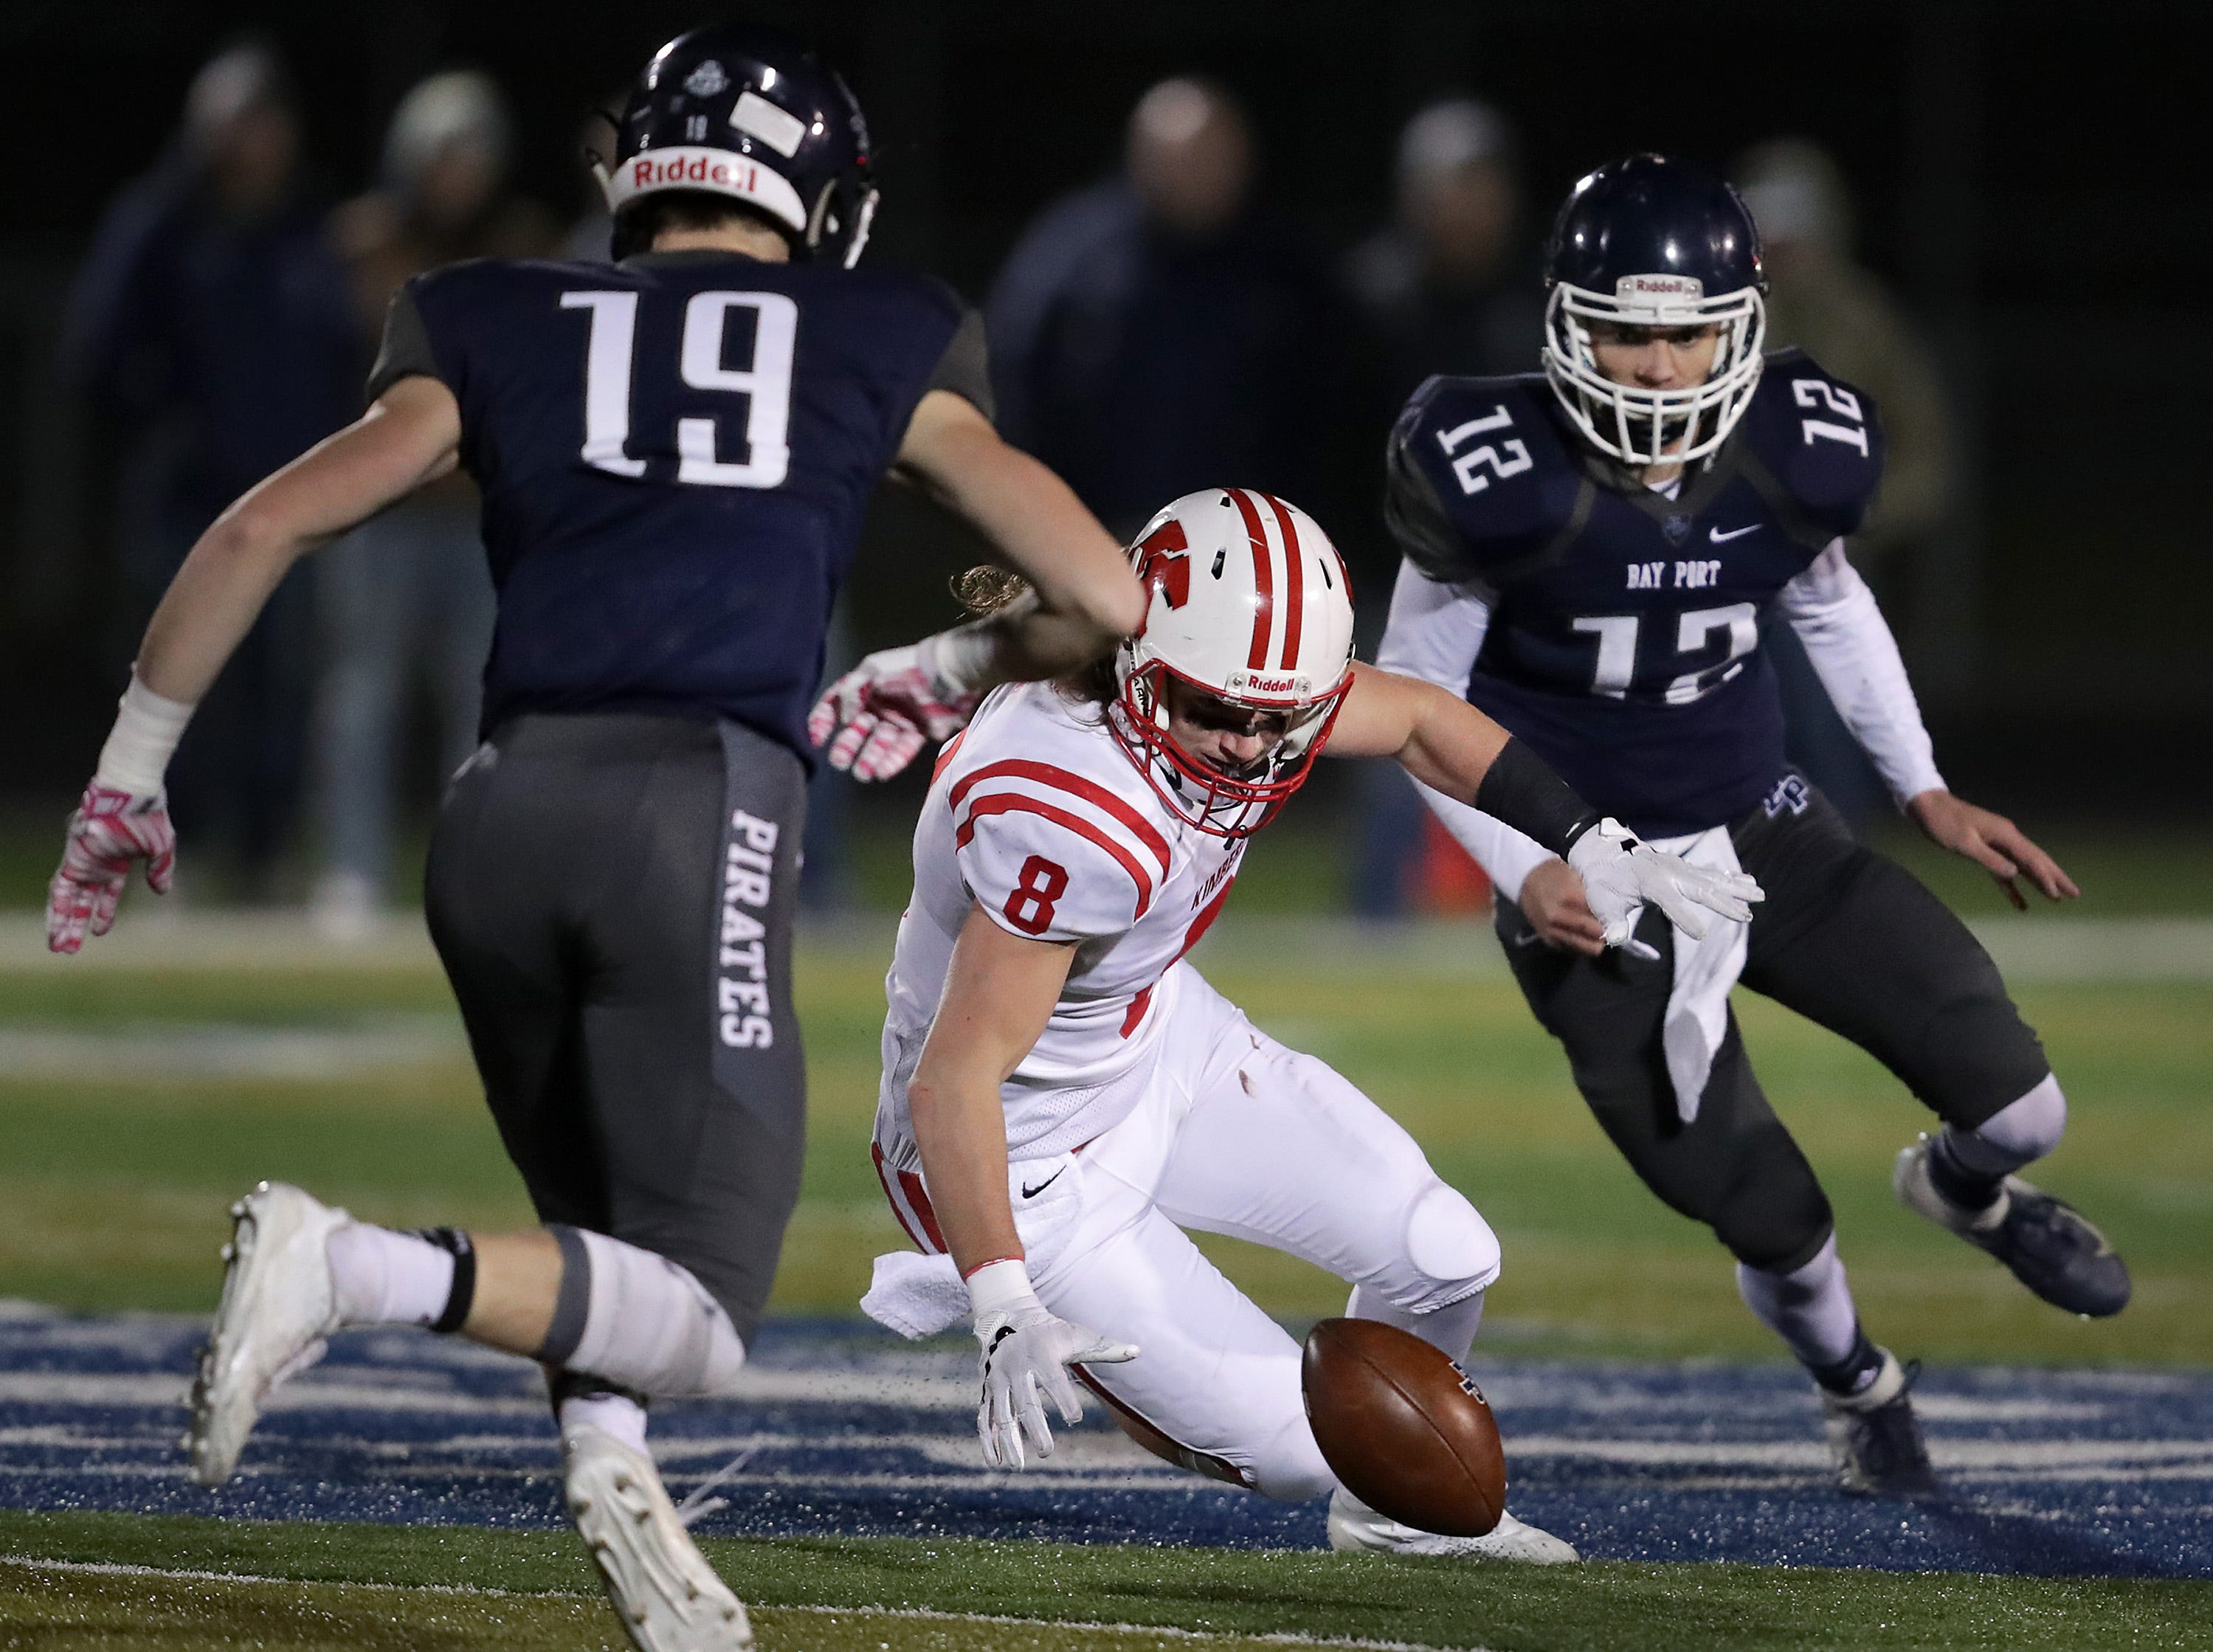 Kimberly High School's #8 Danny Kaltenbaugh recovers a second half fumble against Bay Port High School during their WIAA Division 1 state quarterfinal football game on Friday, November 2, 2018, in Suamico, Wis.  Kimberly defeated Bay Port 38 to 20. Wm. Glasheen/USA TODAY NETWORK-Wisconsin.